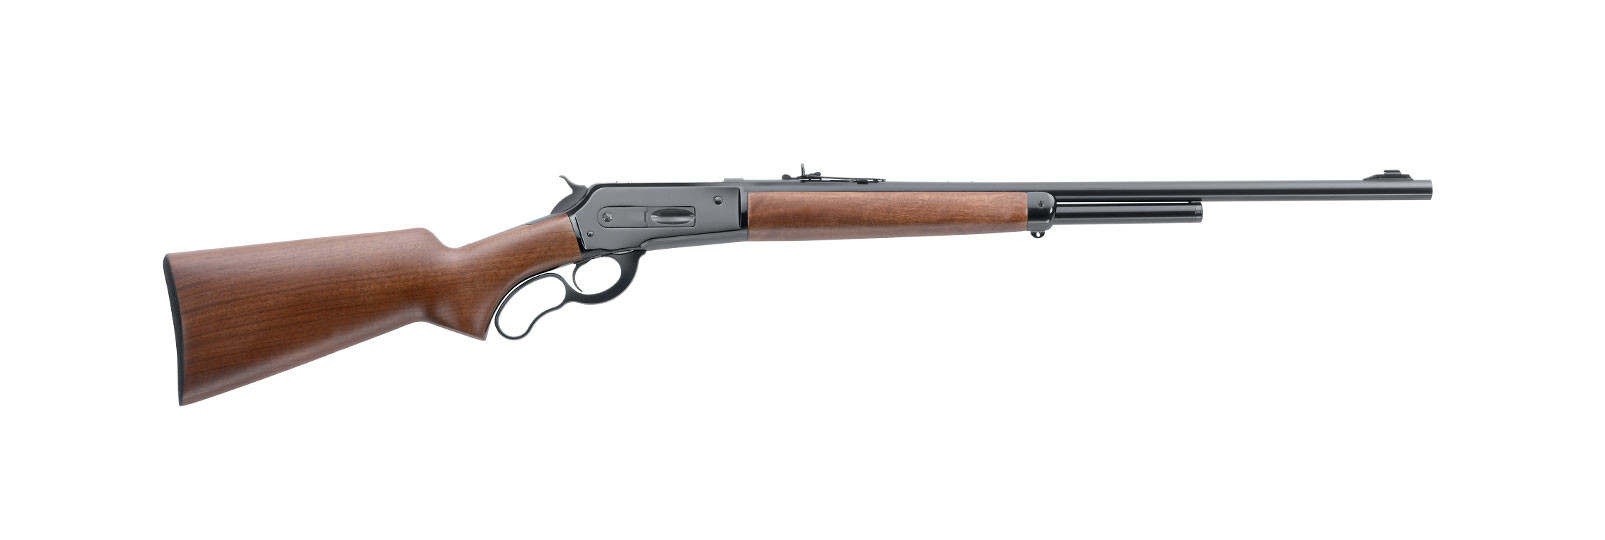 86/71 lever action wildbuster .45/70